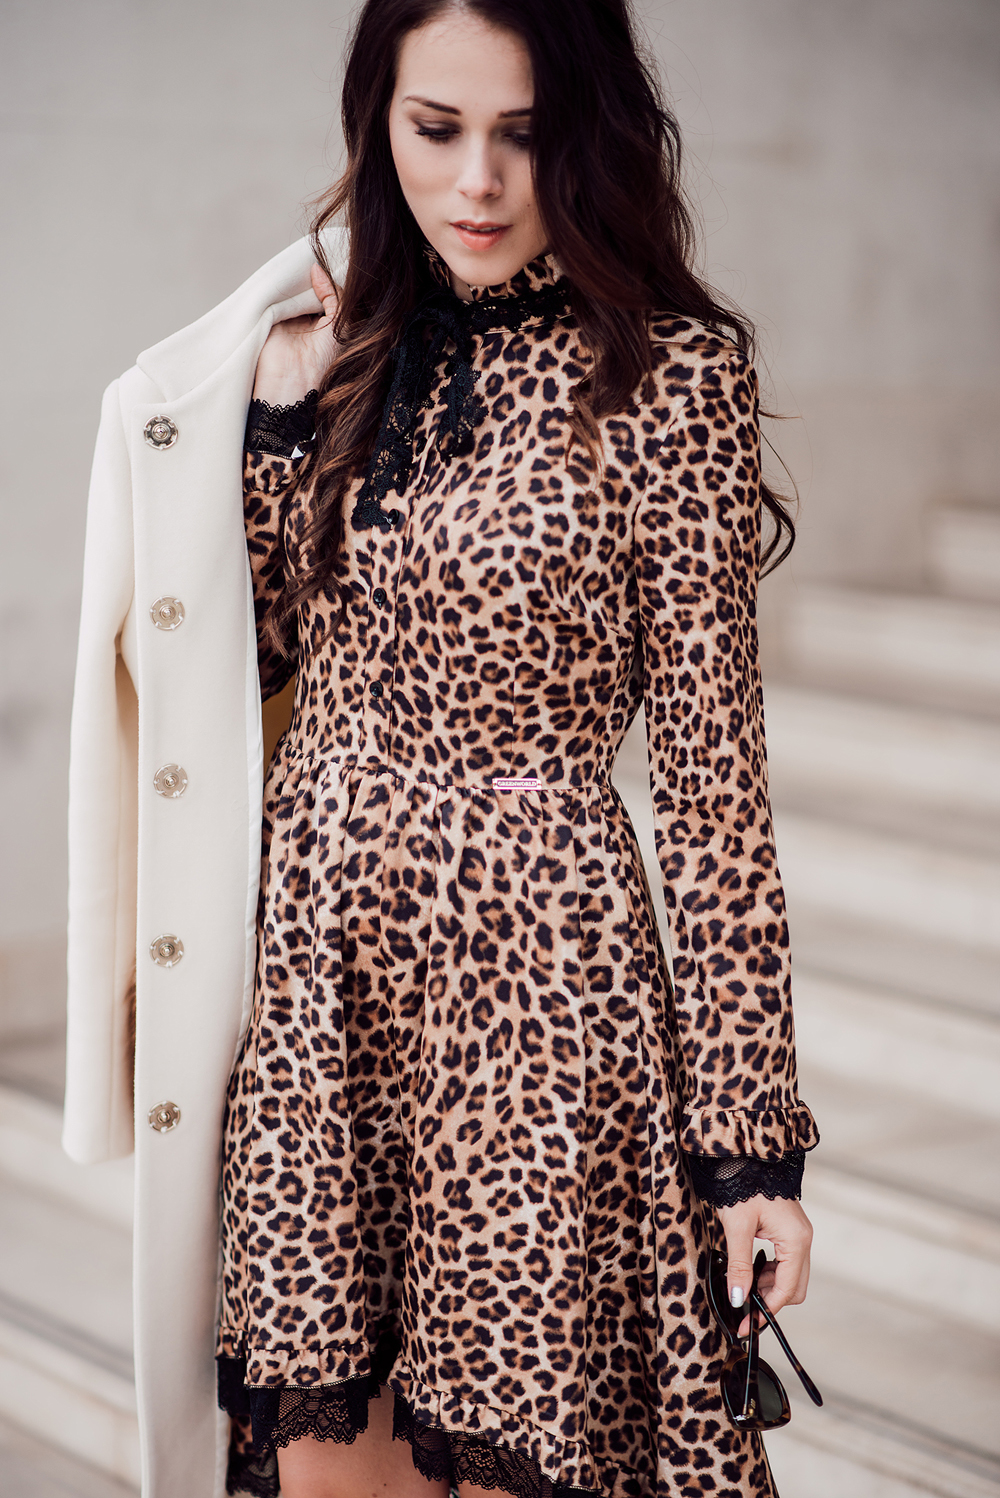 eva-ahacevcic_love-eva_terminal3_ootd_leopard-print_dress_fashion-blogger-12